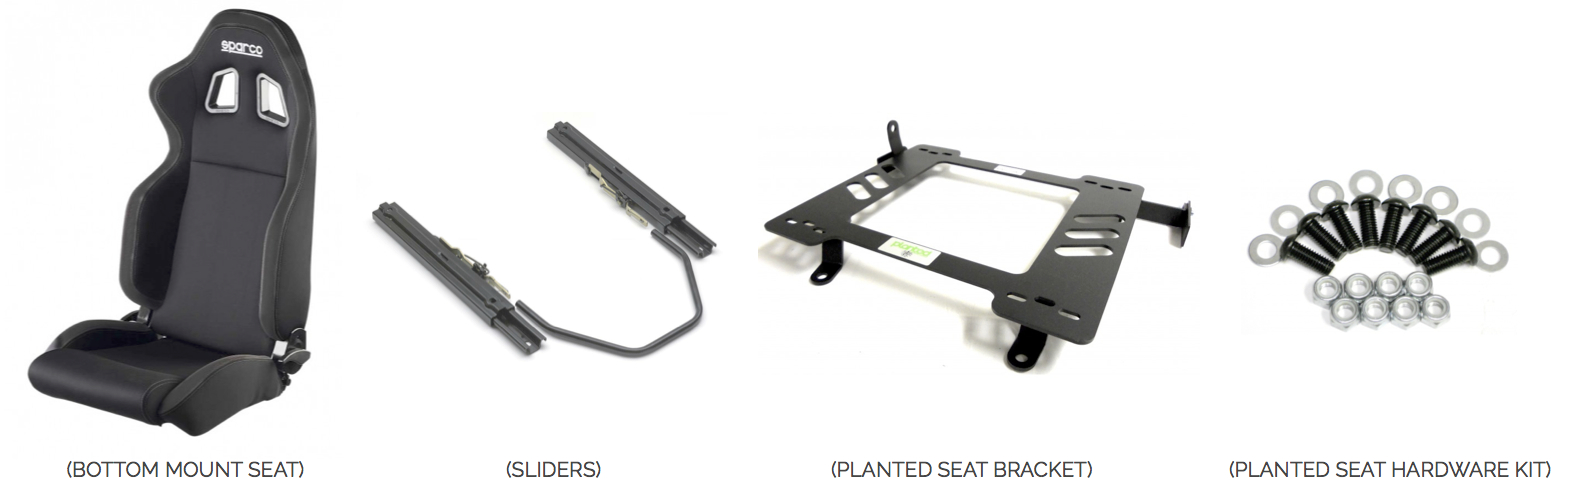 Bottom Mount Seat with Sliders - Installation Instructions